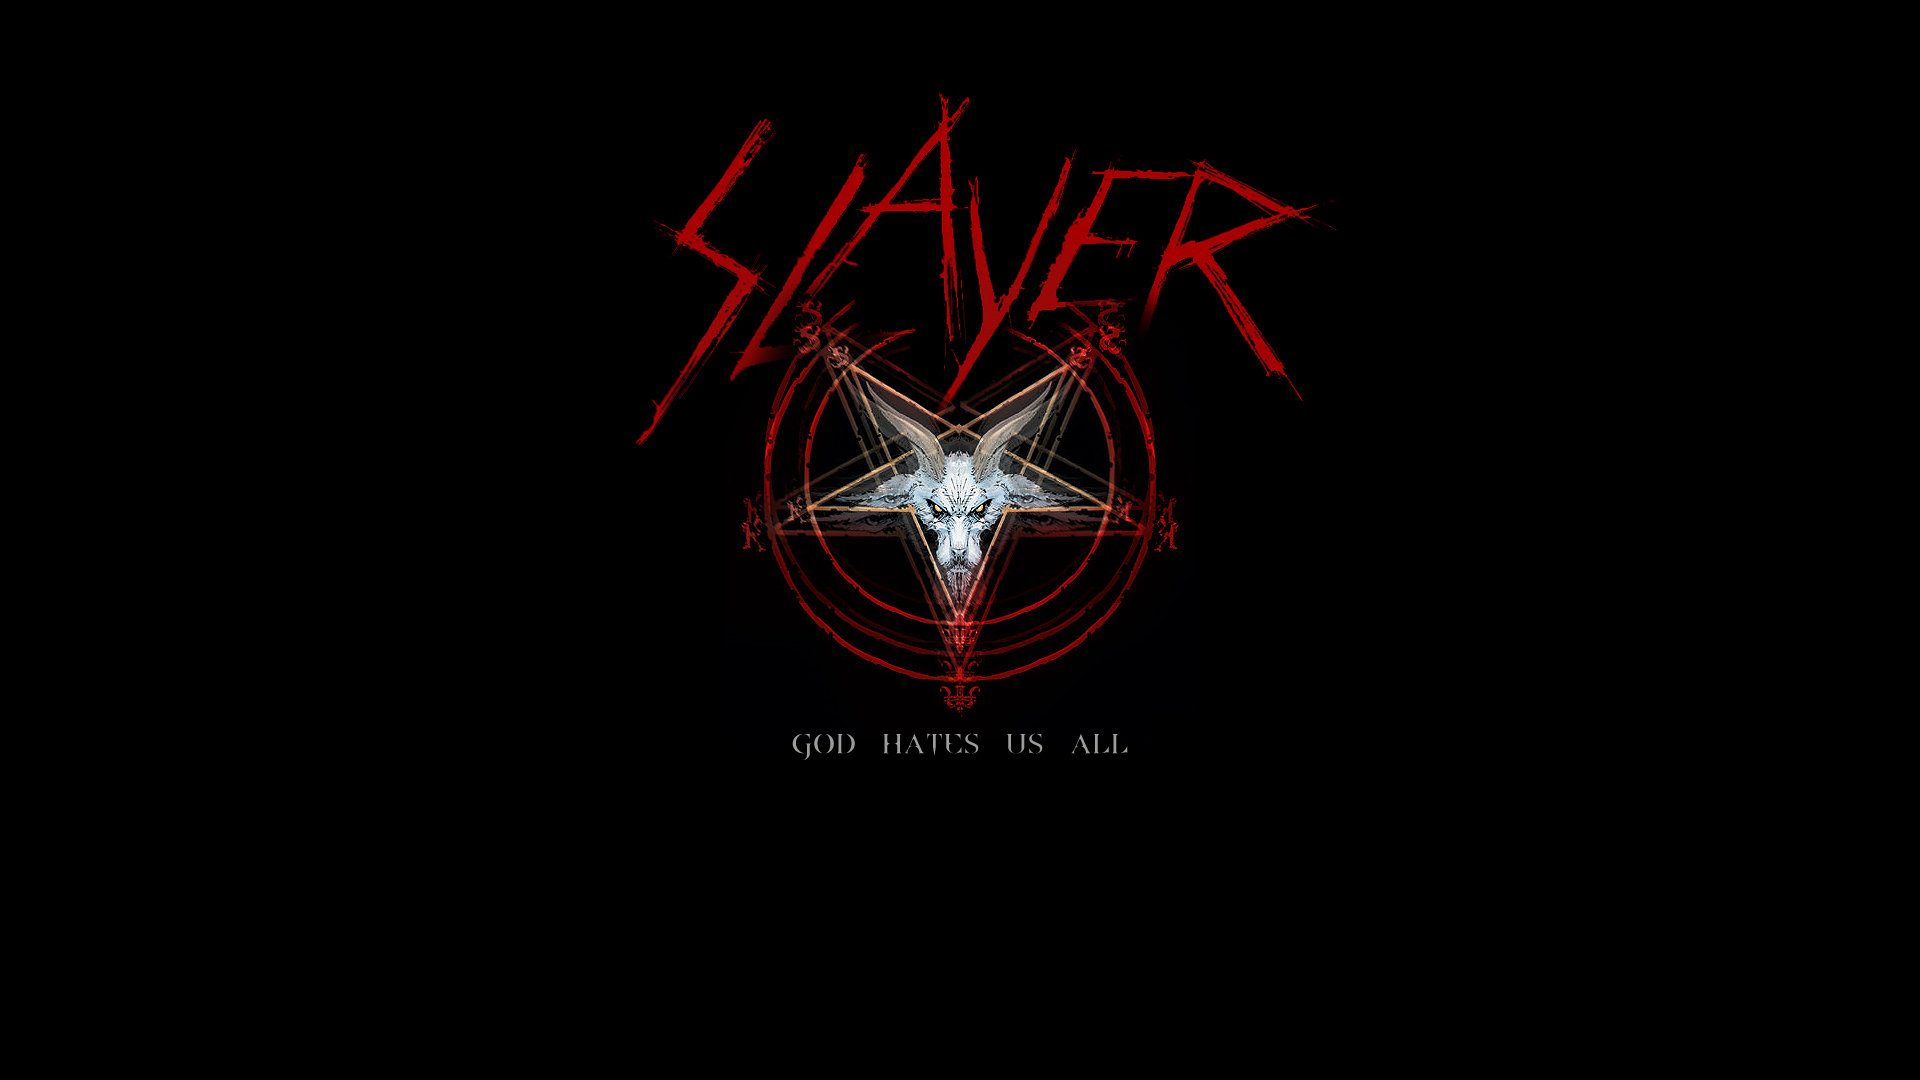 Awesome Slayer free wallpaper ID:246744 for hd 1920x1080 computer